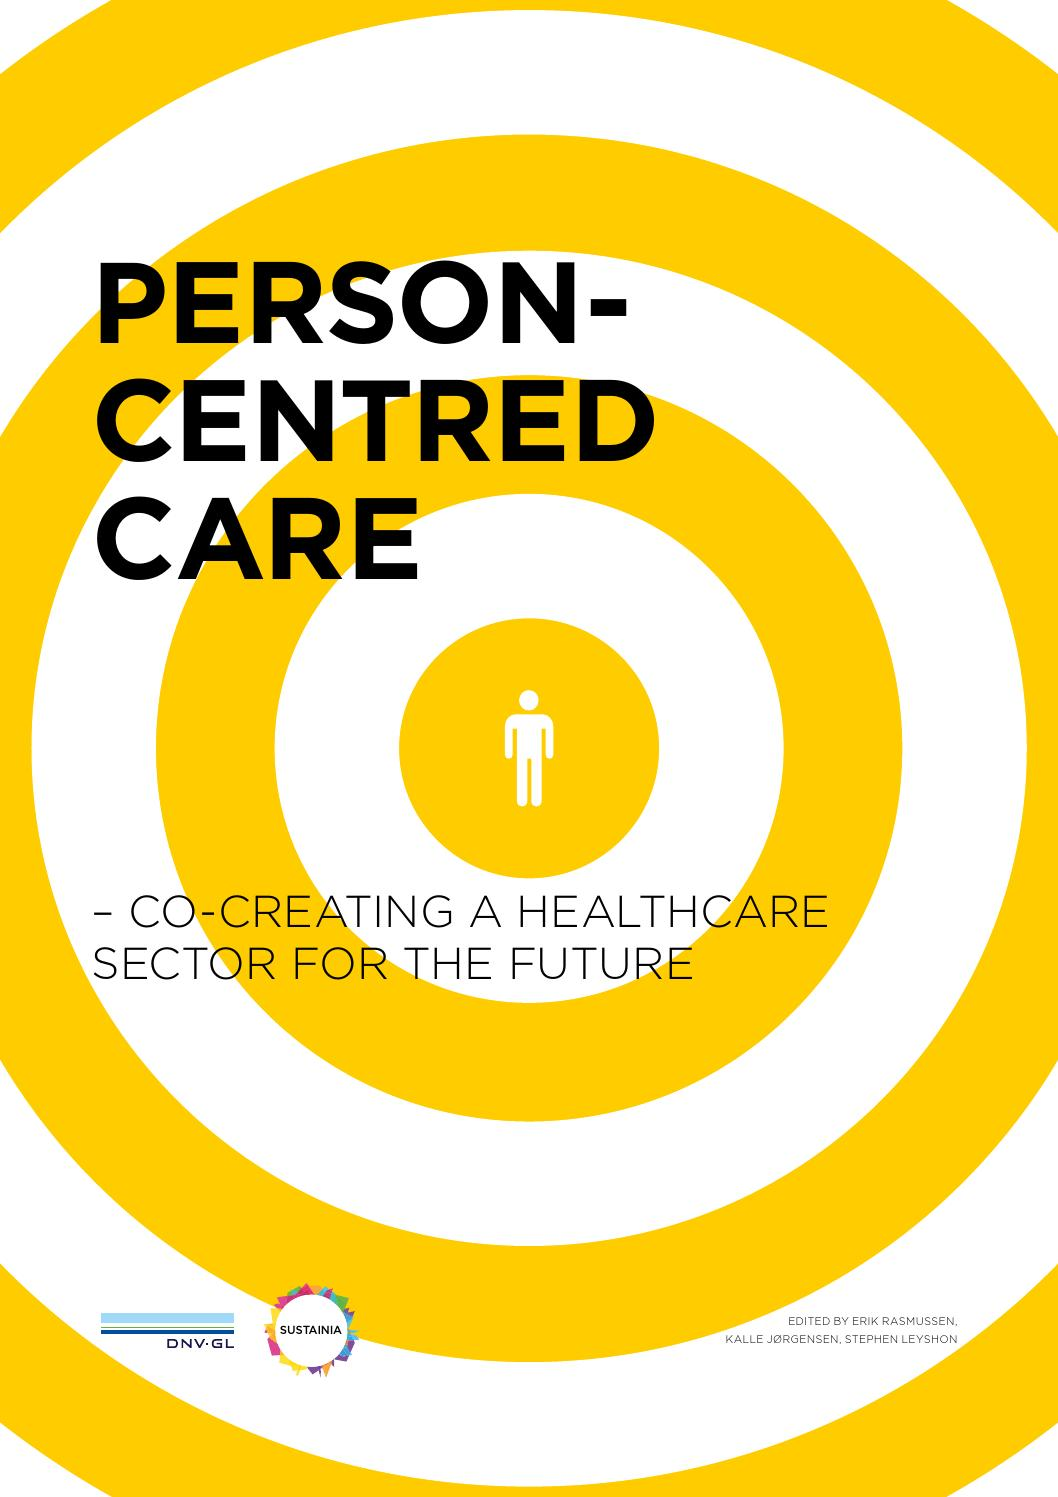 essay on person centred care This essay explores the idea of person centred care and the significance it has in caring for an older patient issues related to patients incapable of taking part in their care will also be discussed.